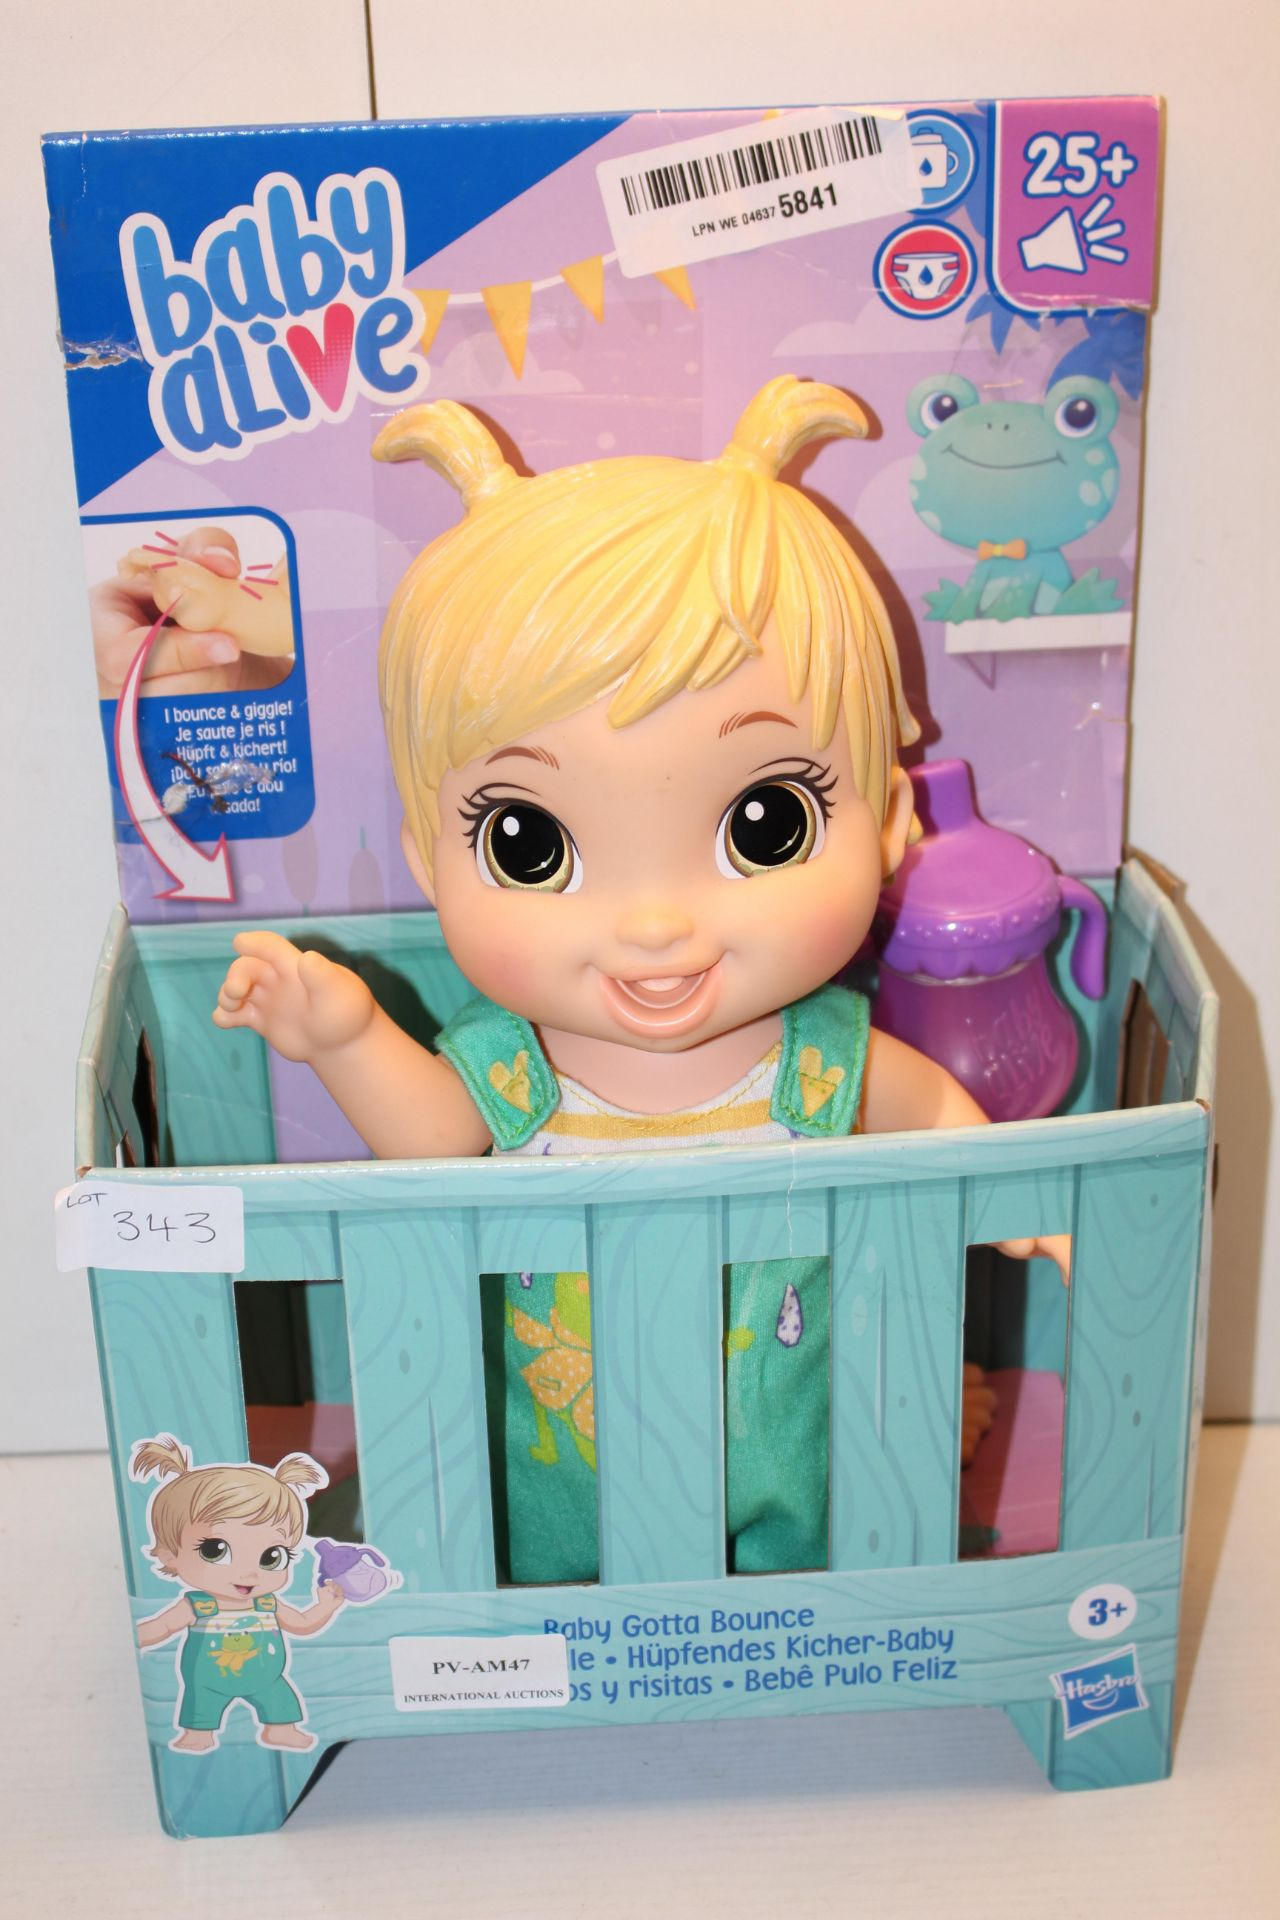 BOXED BABY ALIVE - BABY GOTTA BOUNCE TOYCondition ReportAppraisal Available on Request- All Items